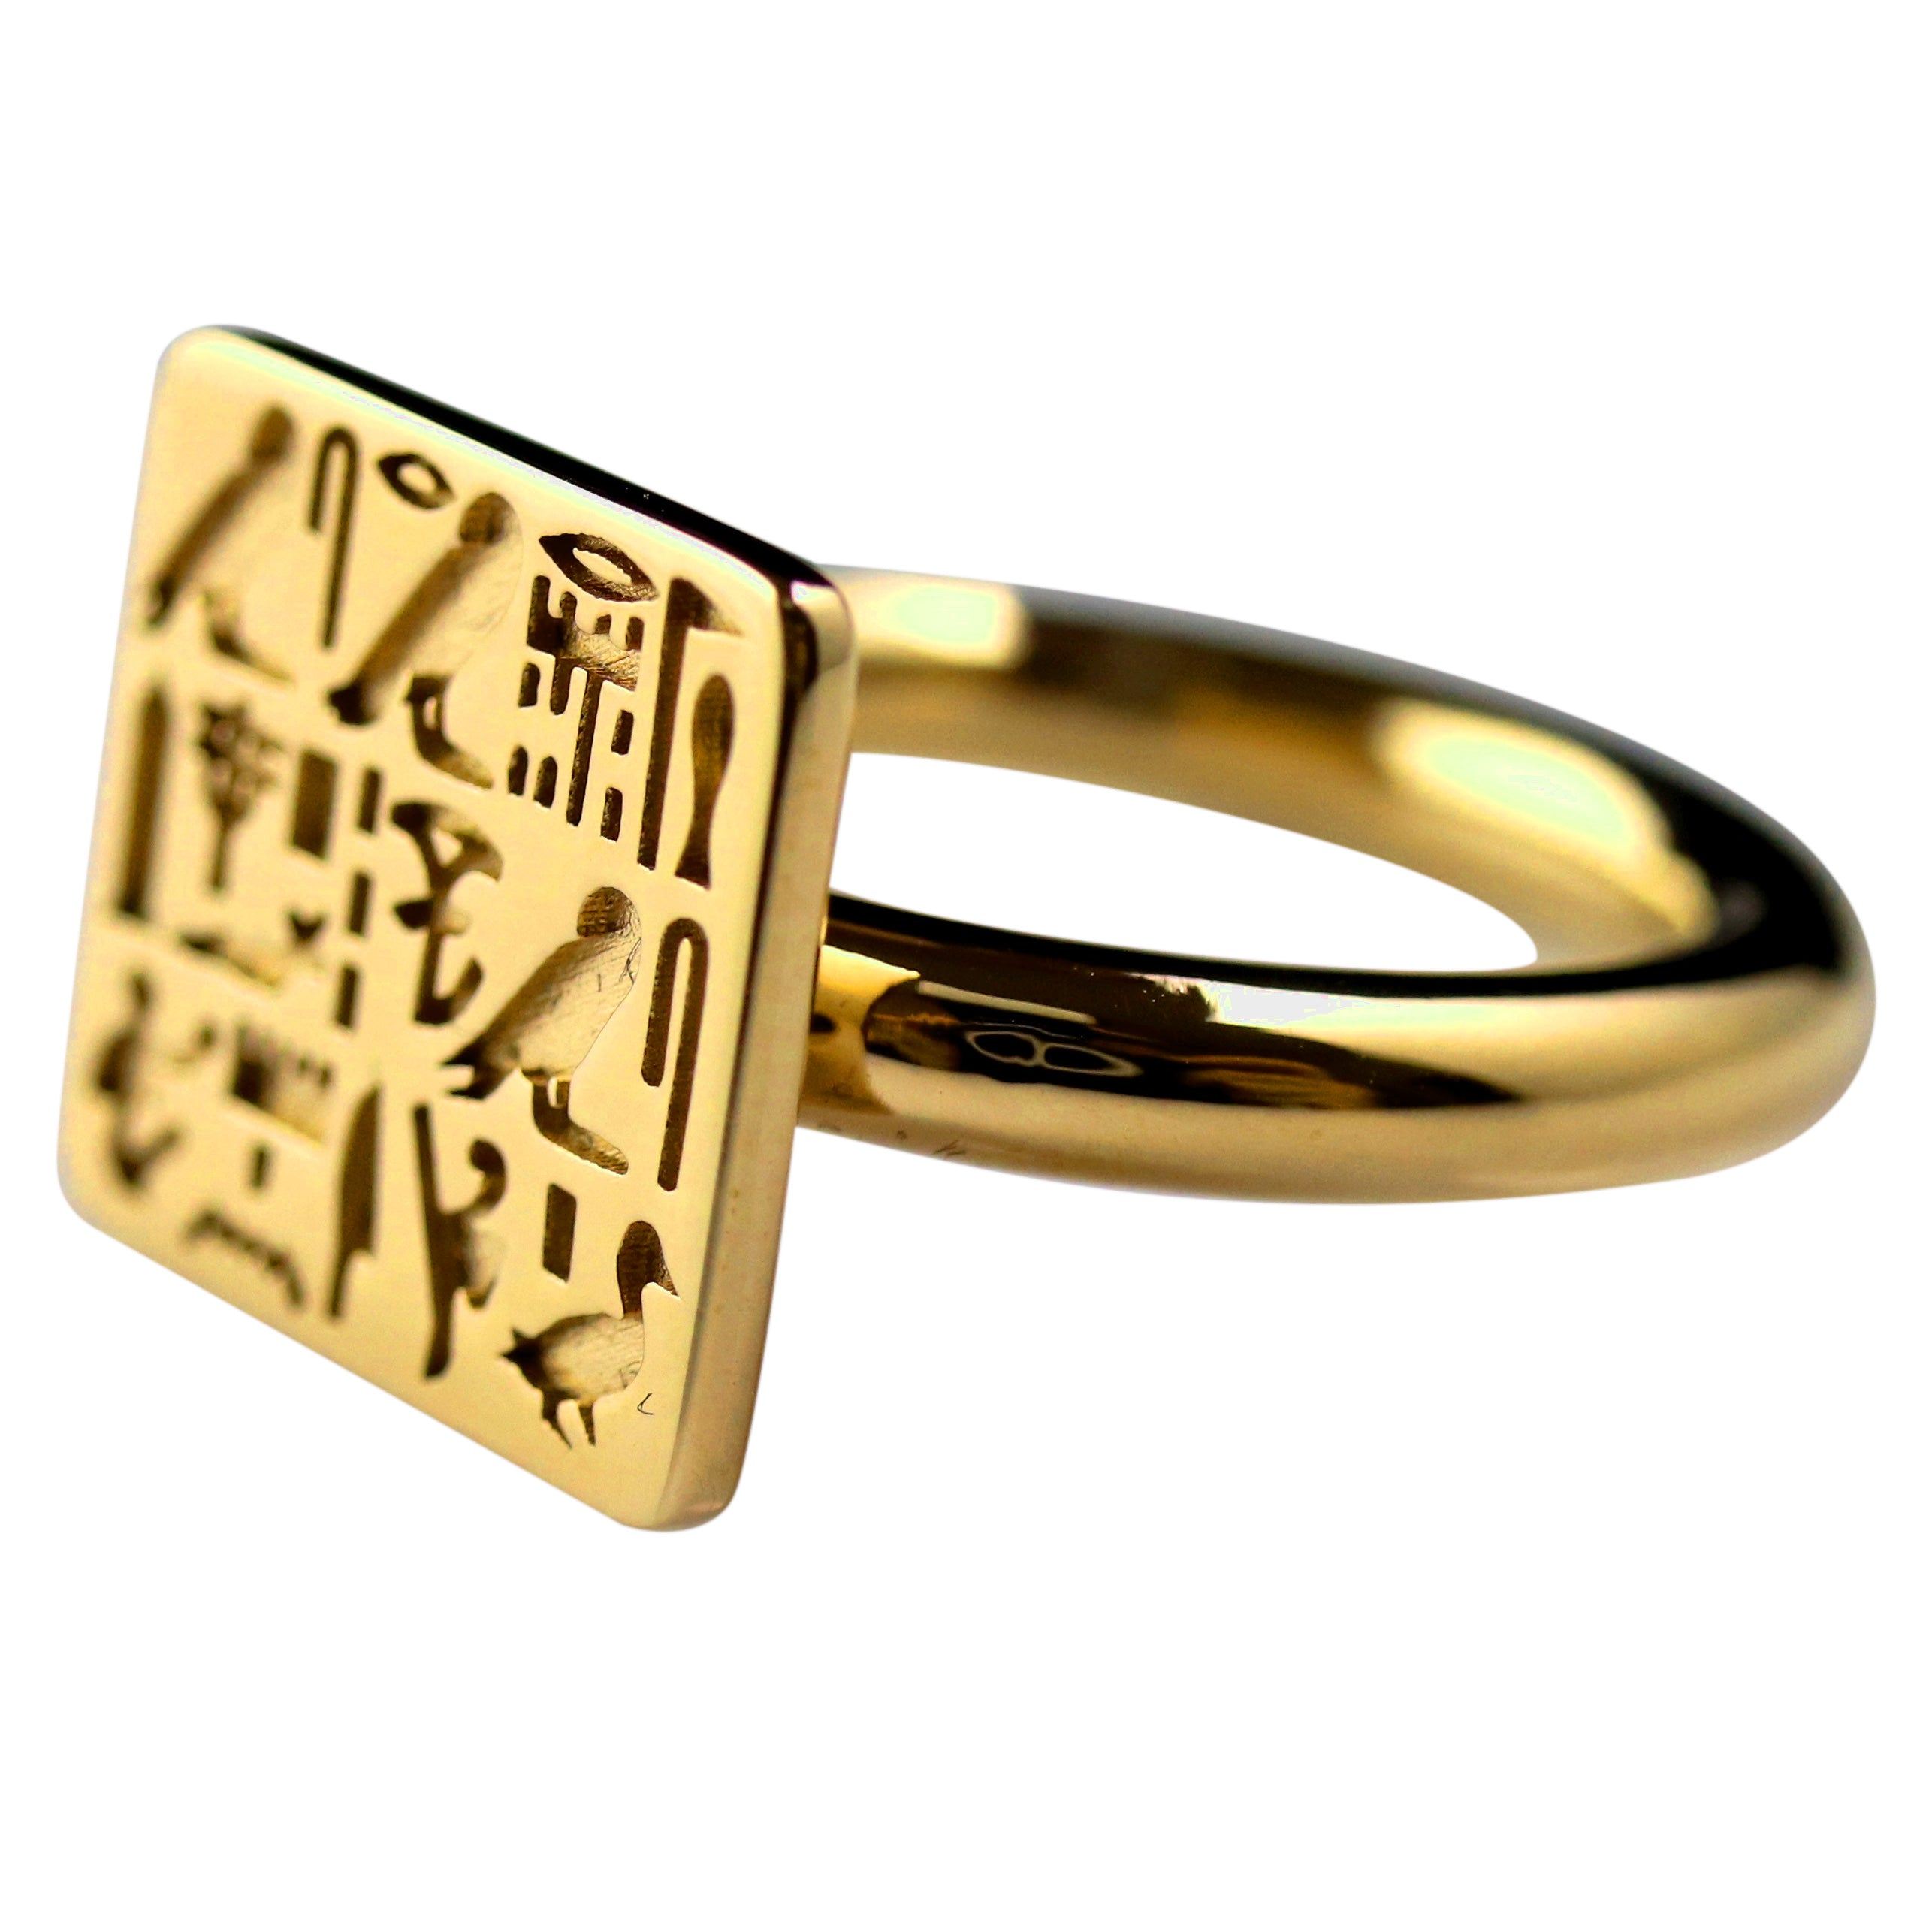 Ring of Priest Sienamun w/ Large Bezel - Gold-Plated